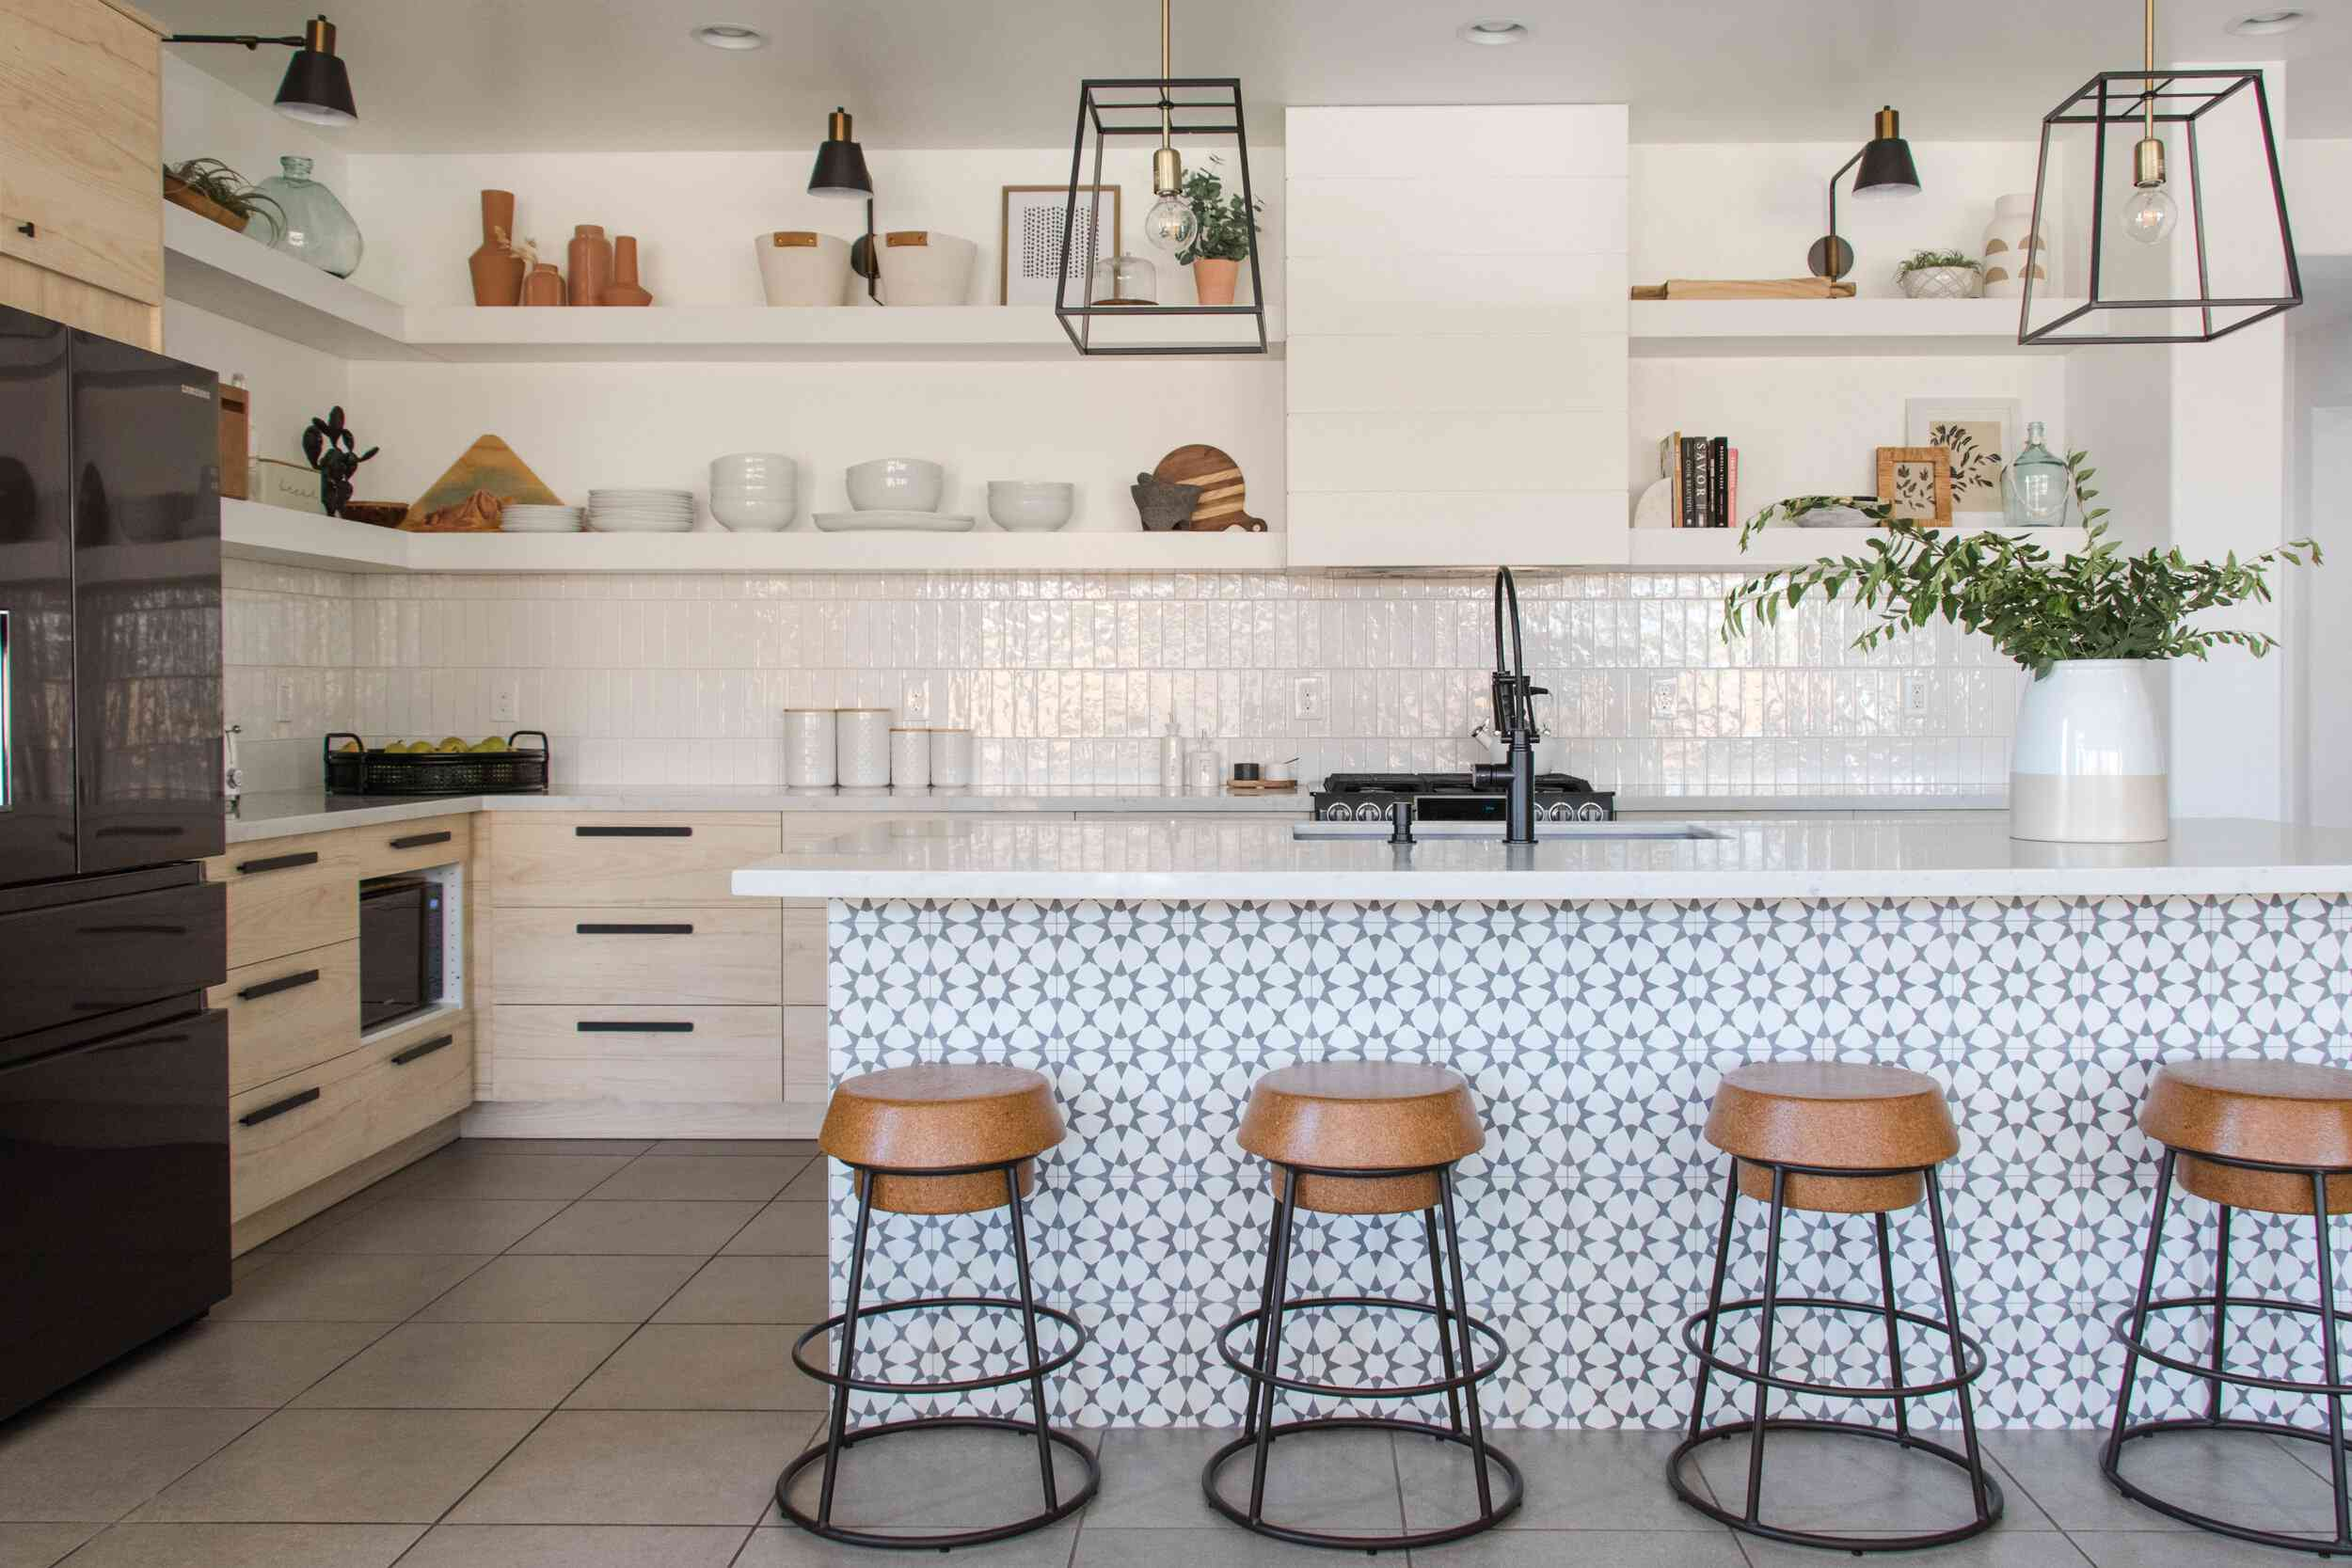 An open-concept kitchen with a boldly tiled kitchen island